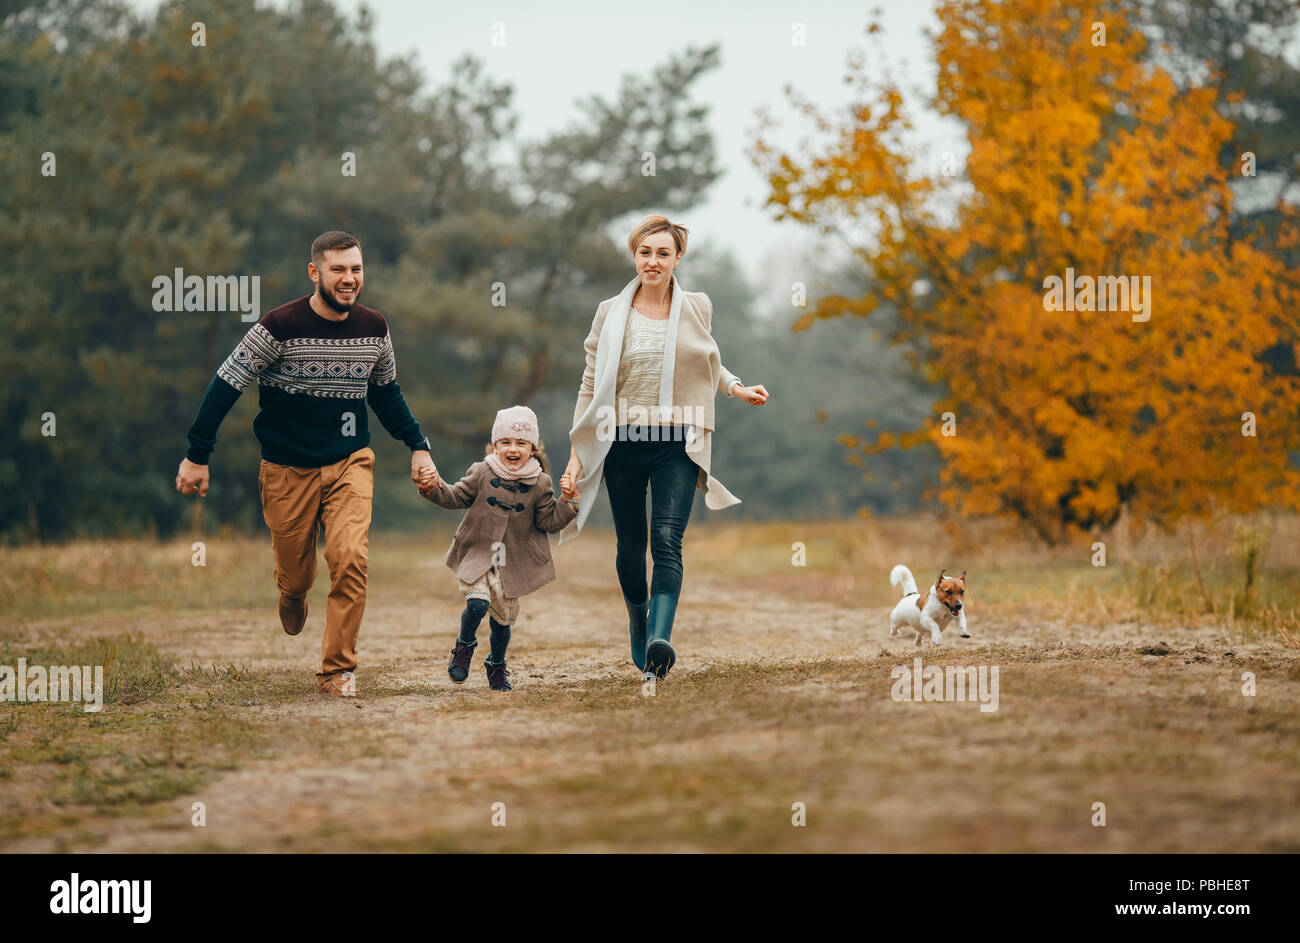 Happy parents with their daughter hold hands and run at forest path next to dog during walk in autumn forest. - Stock Image